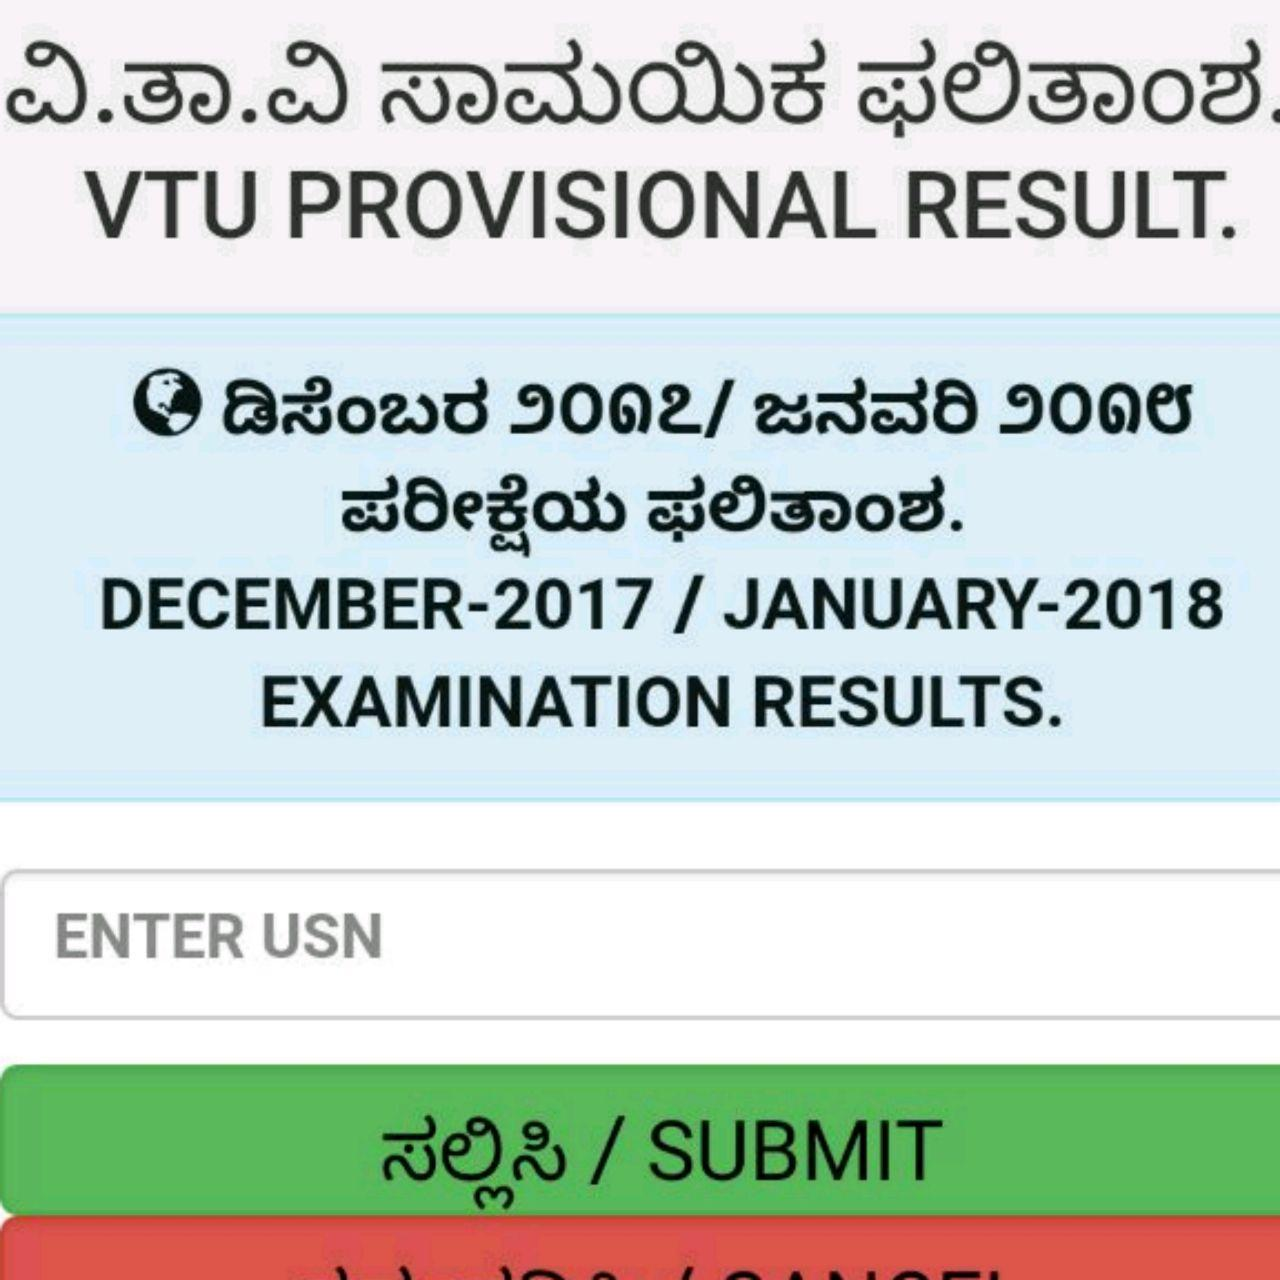 VTU Results & Notifications for Android - APK Download